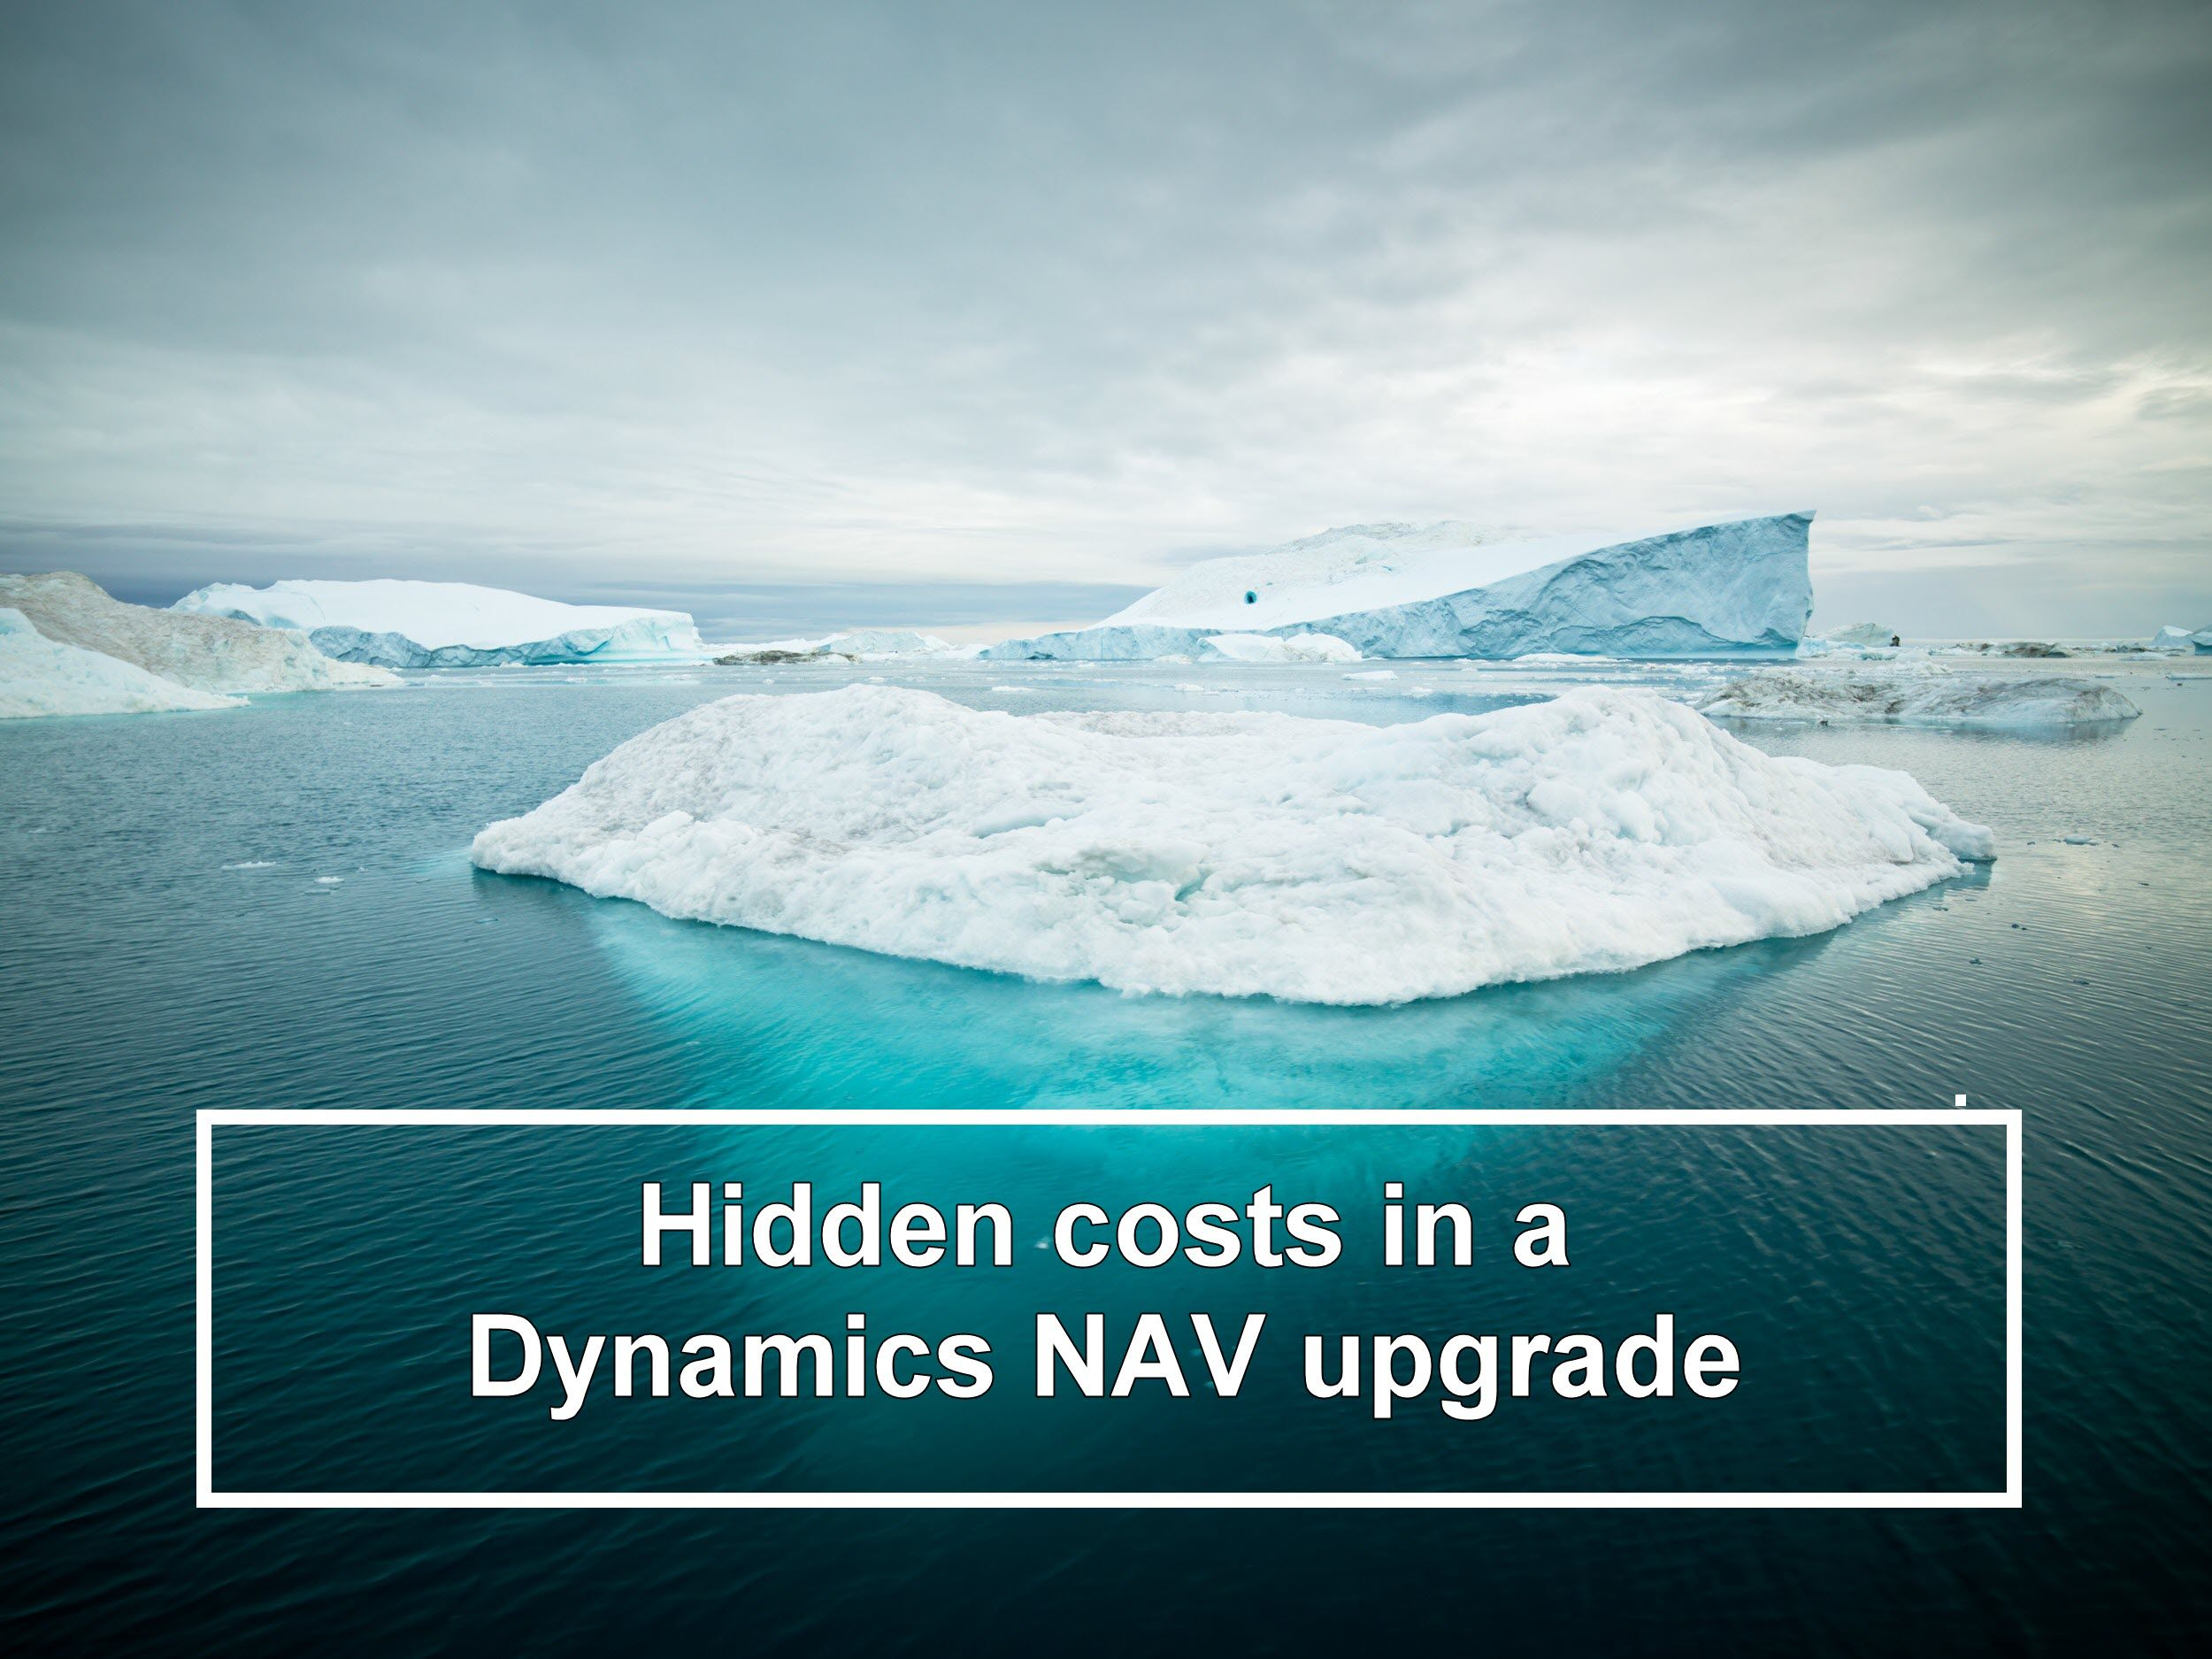 Hidded costs Dynamics NAV upgrade